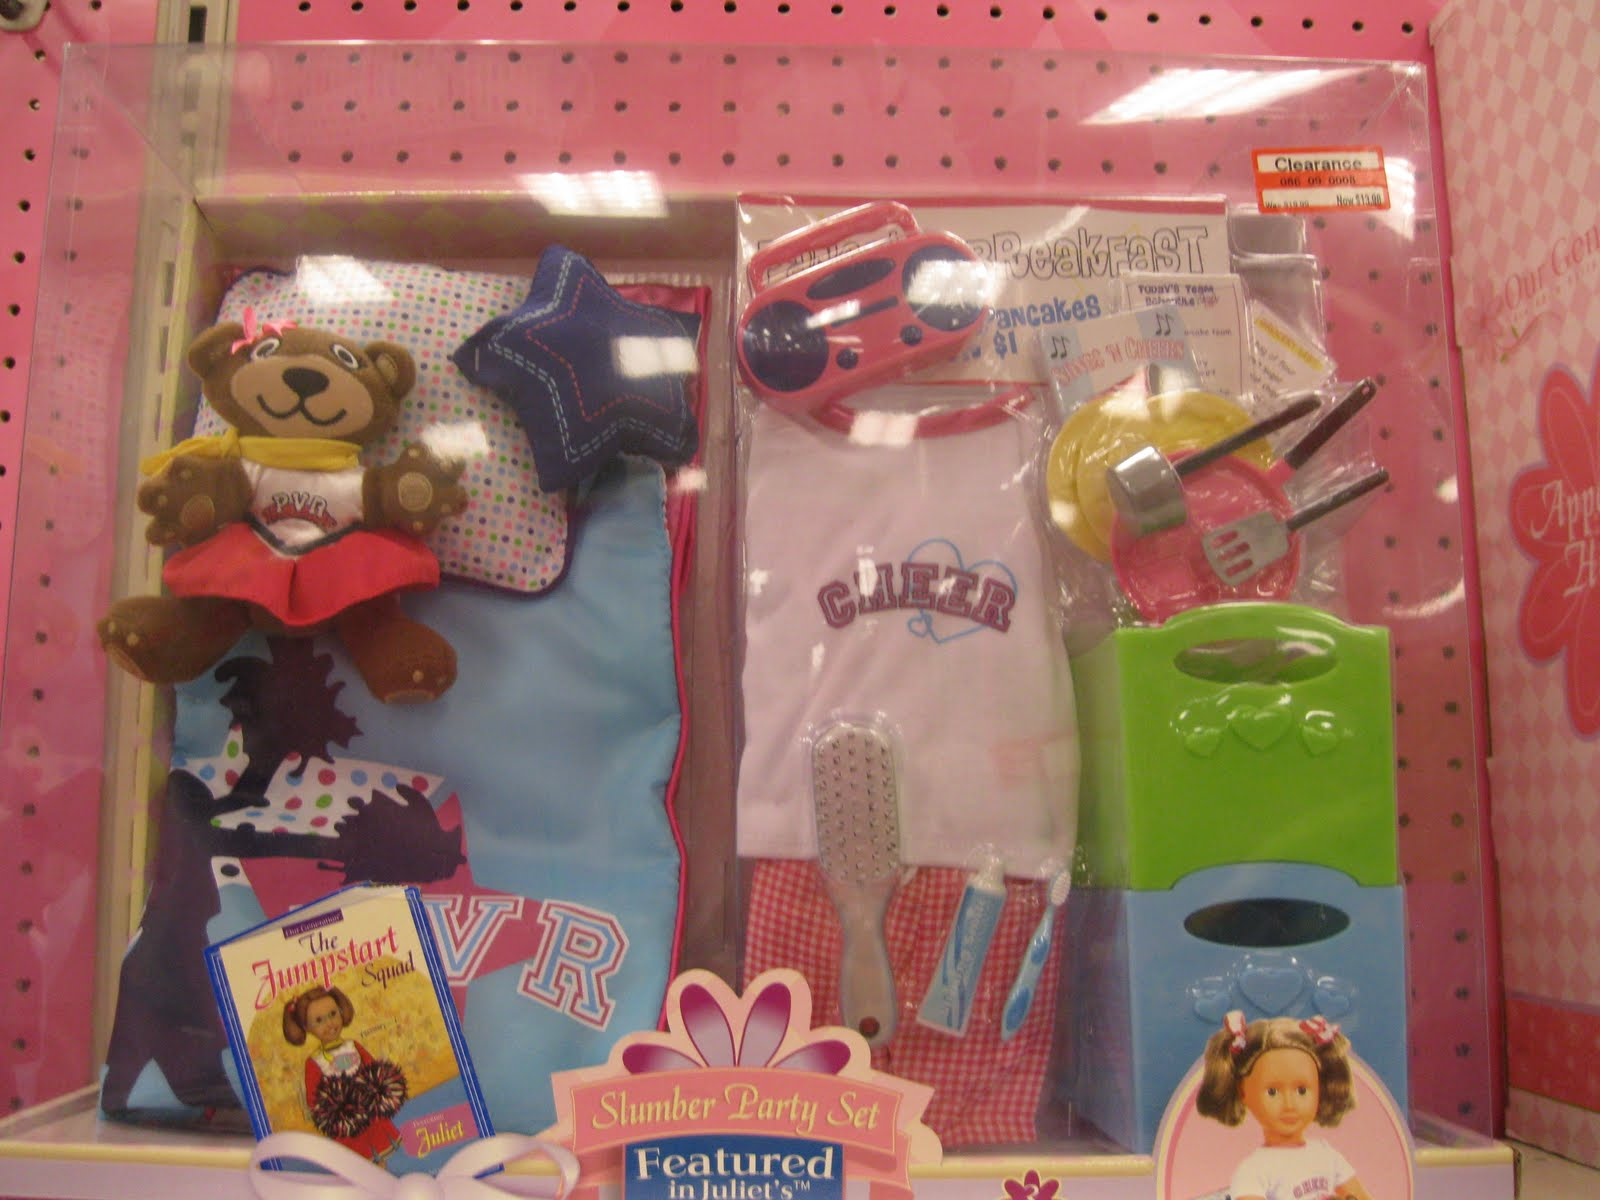 Target Toys For Girls : Target toy clearance july percent off girls toys